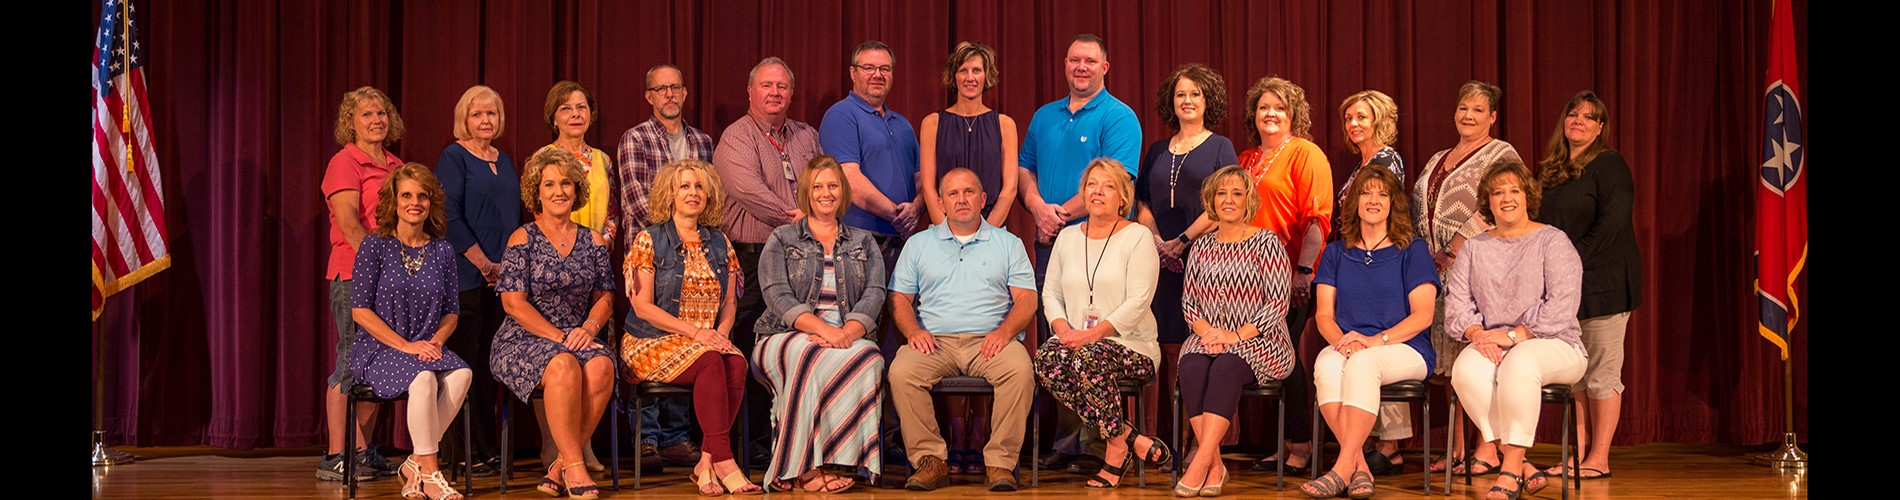 Johnson County Schools 2019-20 Central Office Staff